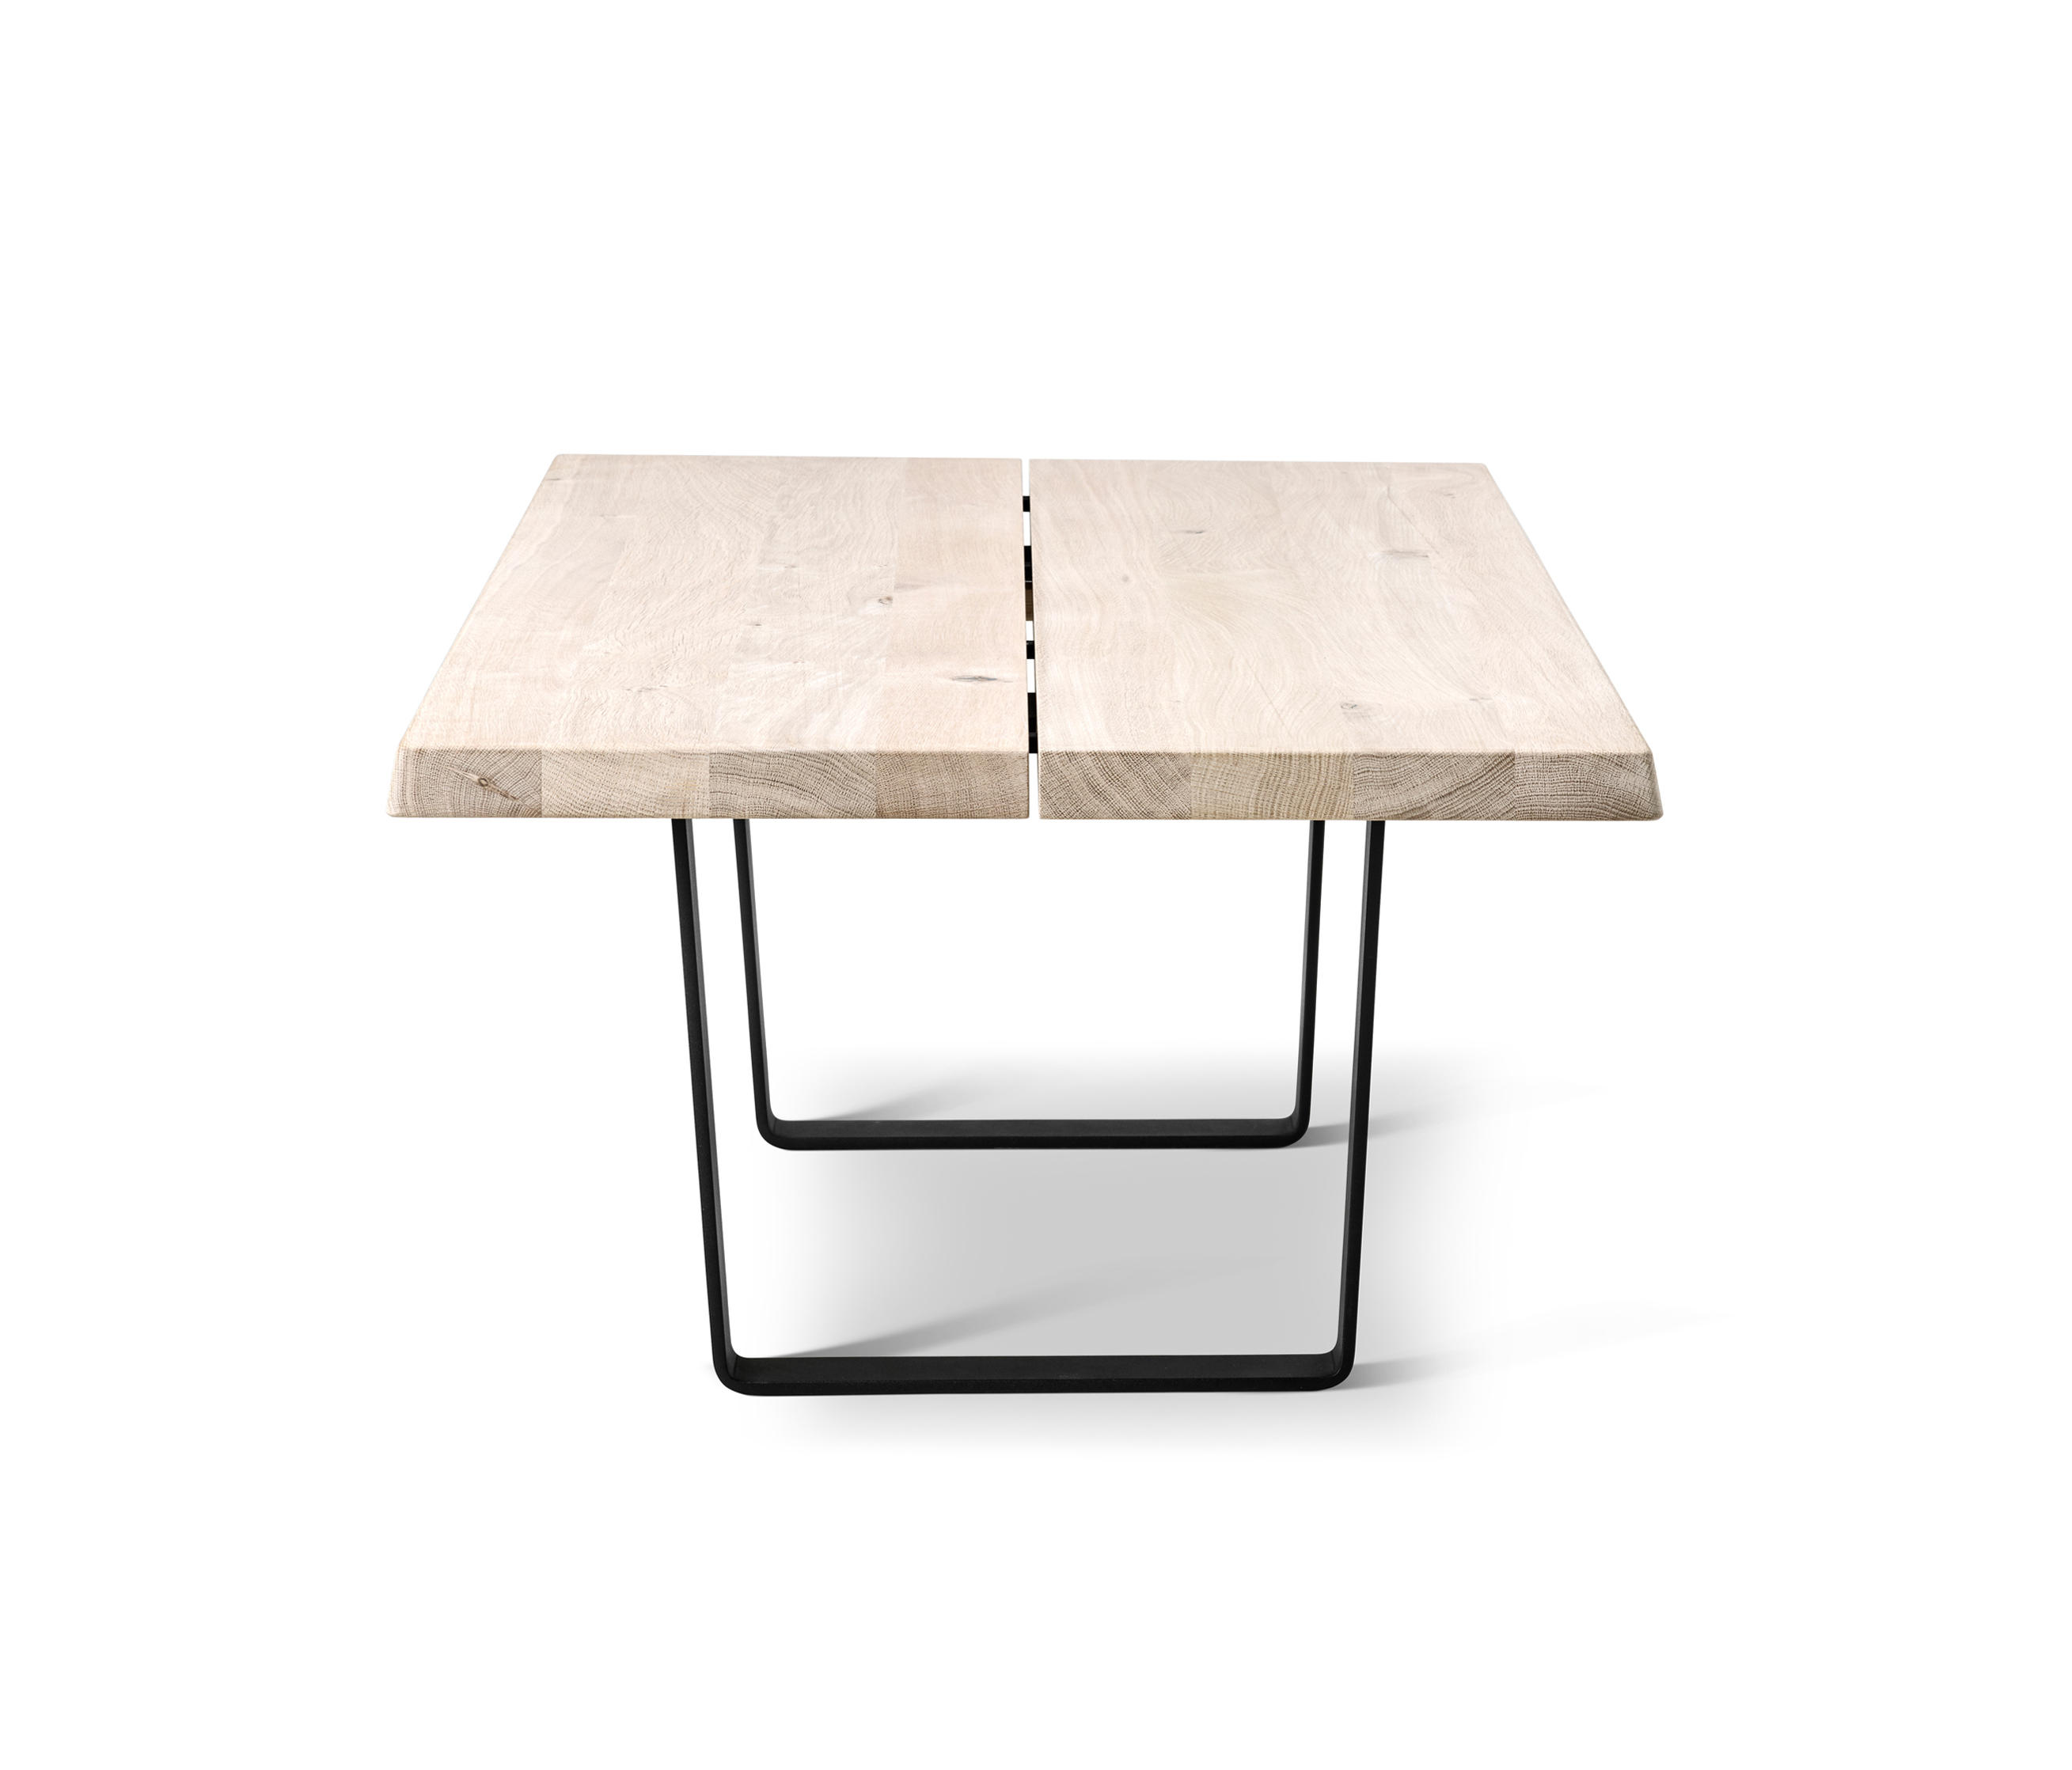 LOWLIGHT COFFEE TABLE Lounge tables from dk3